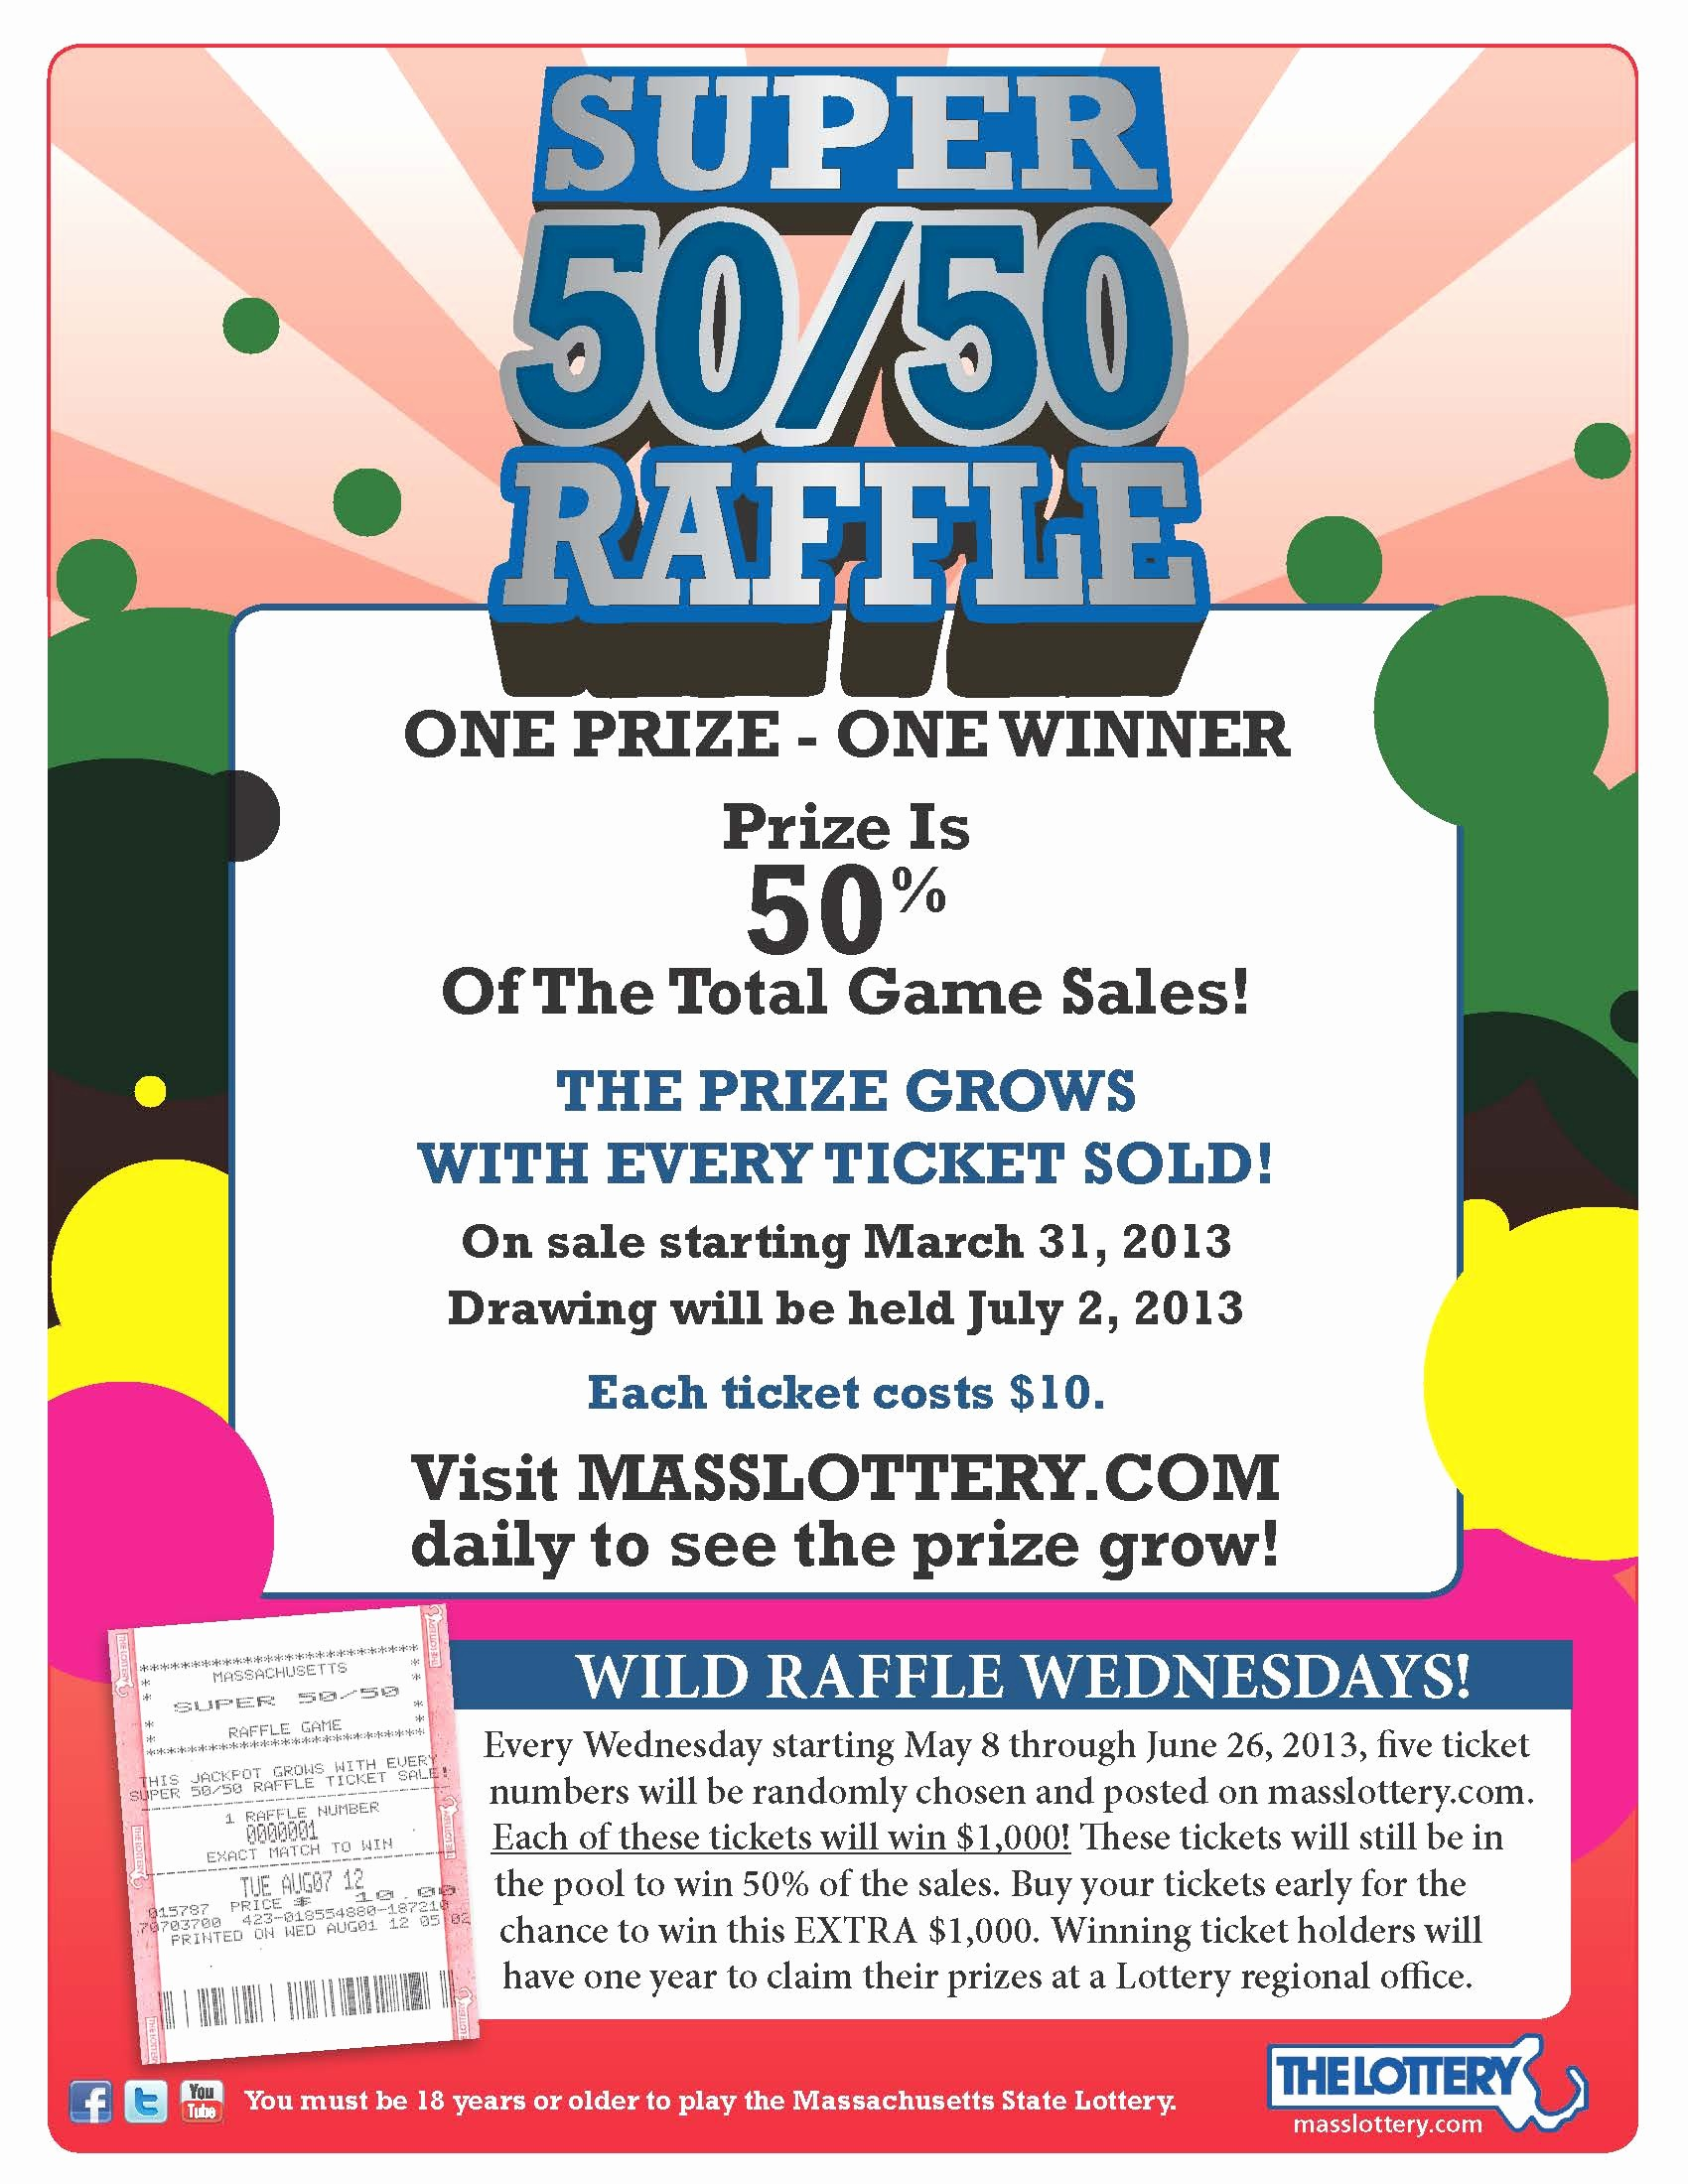 Raffle Ticket Samples for Fundraisers Inspirational Index Of Img Promotions